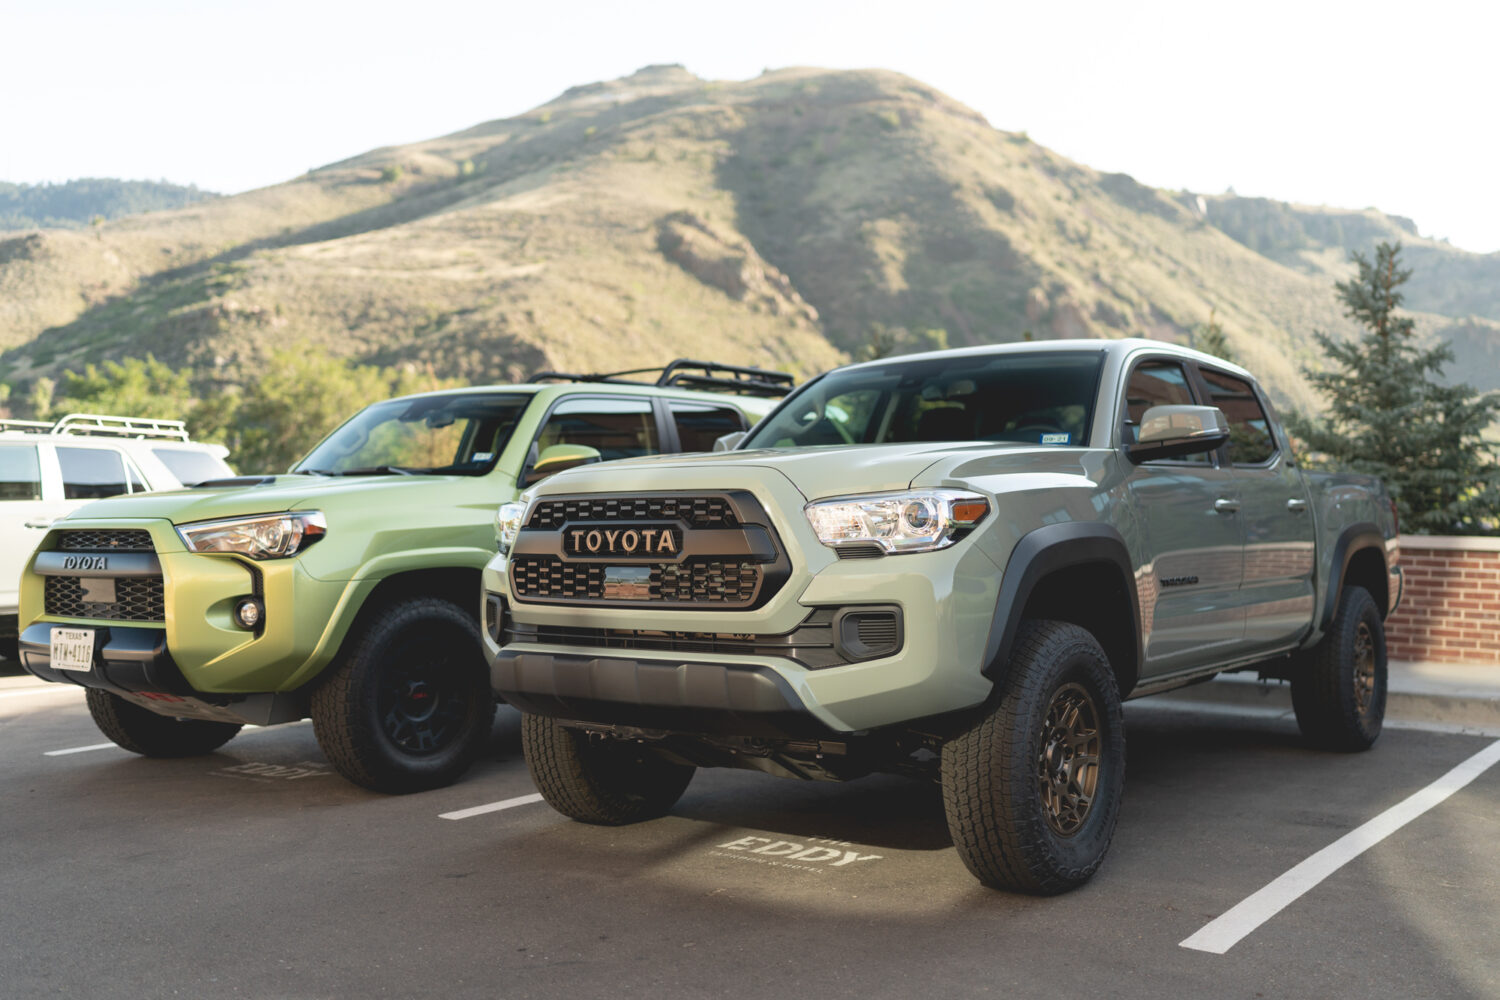 Toyota Tacoma TRD Pro and 4Runner TRD Pro